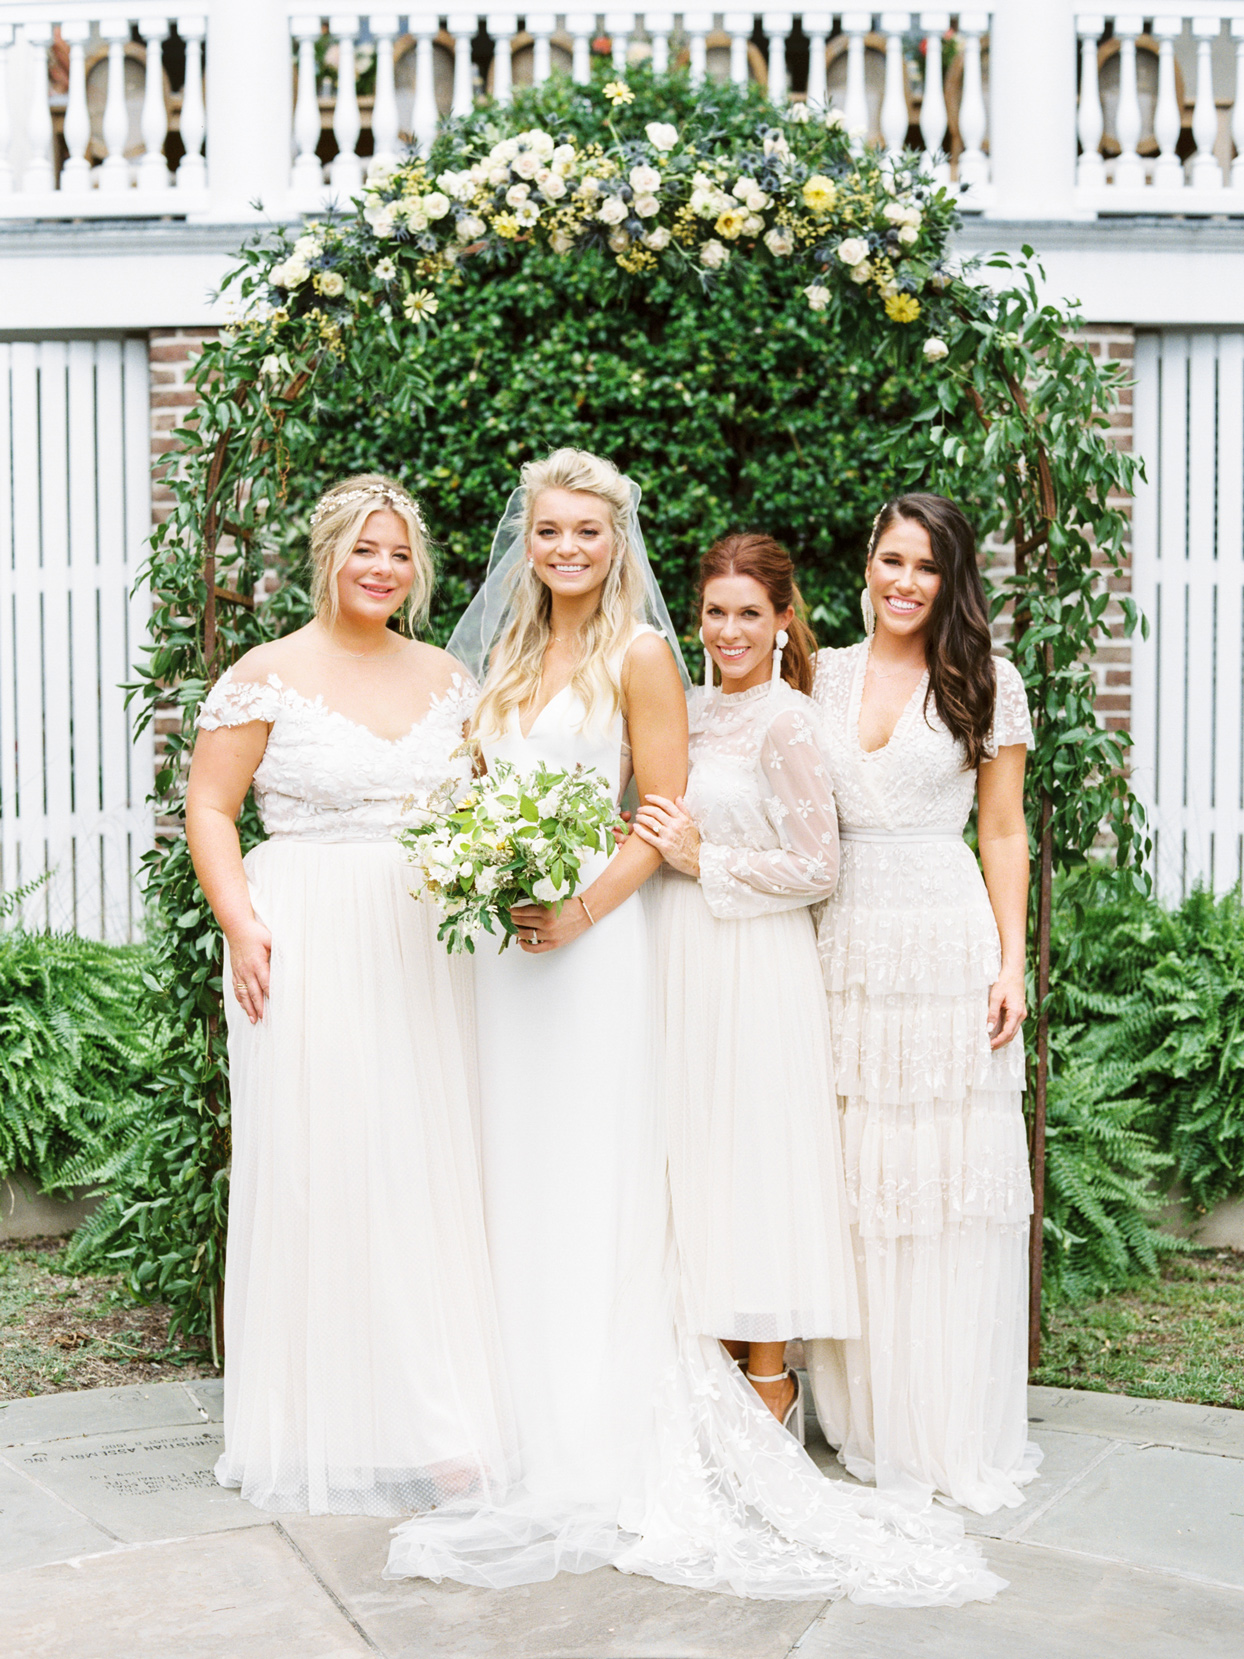 bride with bridesmaids wearing white dresses